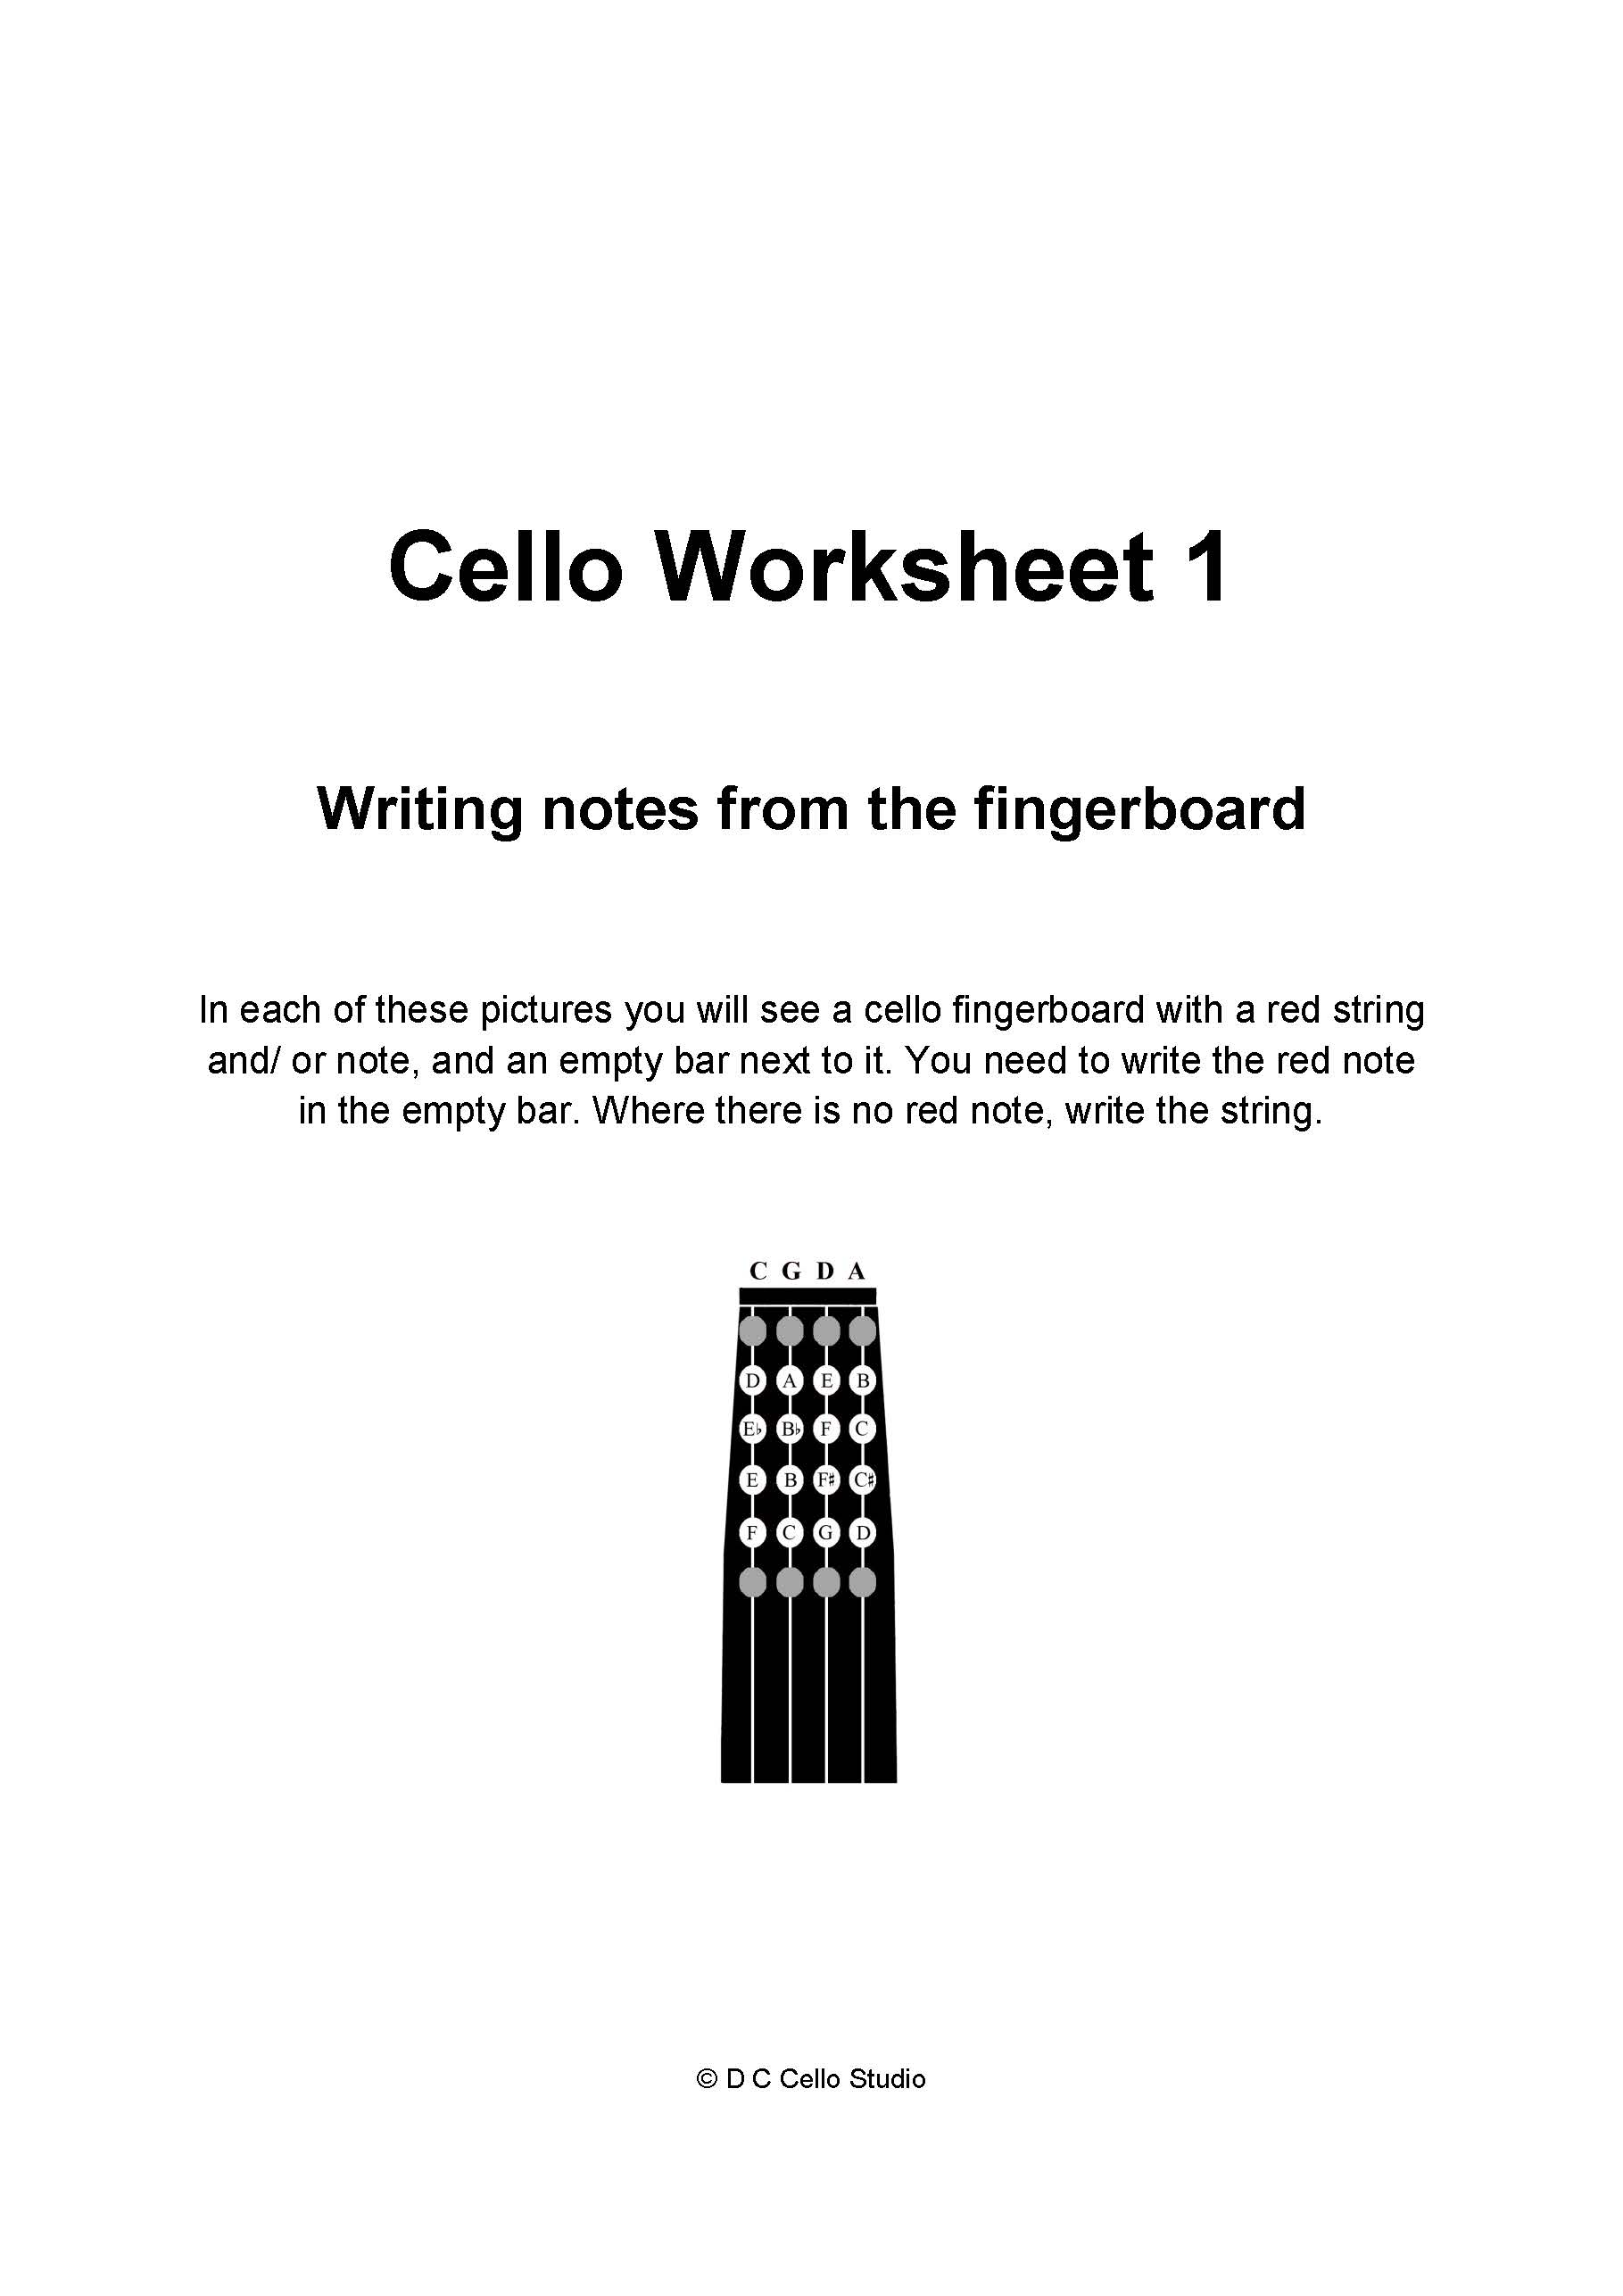 Cello Note Range